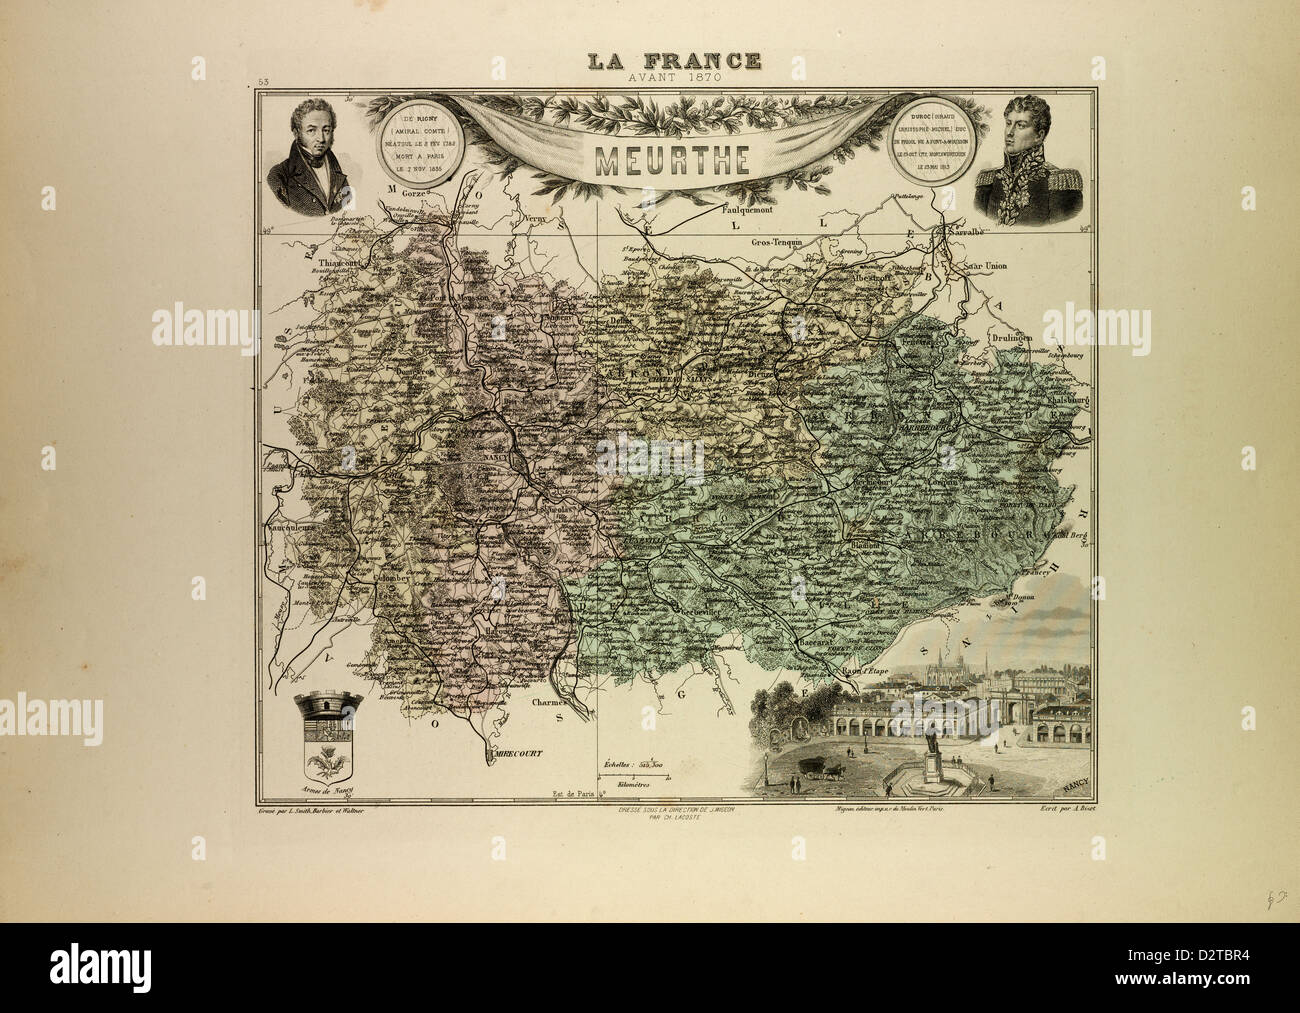 MAP OF MEURTHE 1896 FRANCE - Stock Image